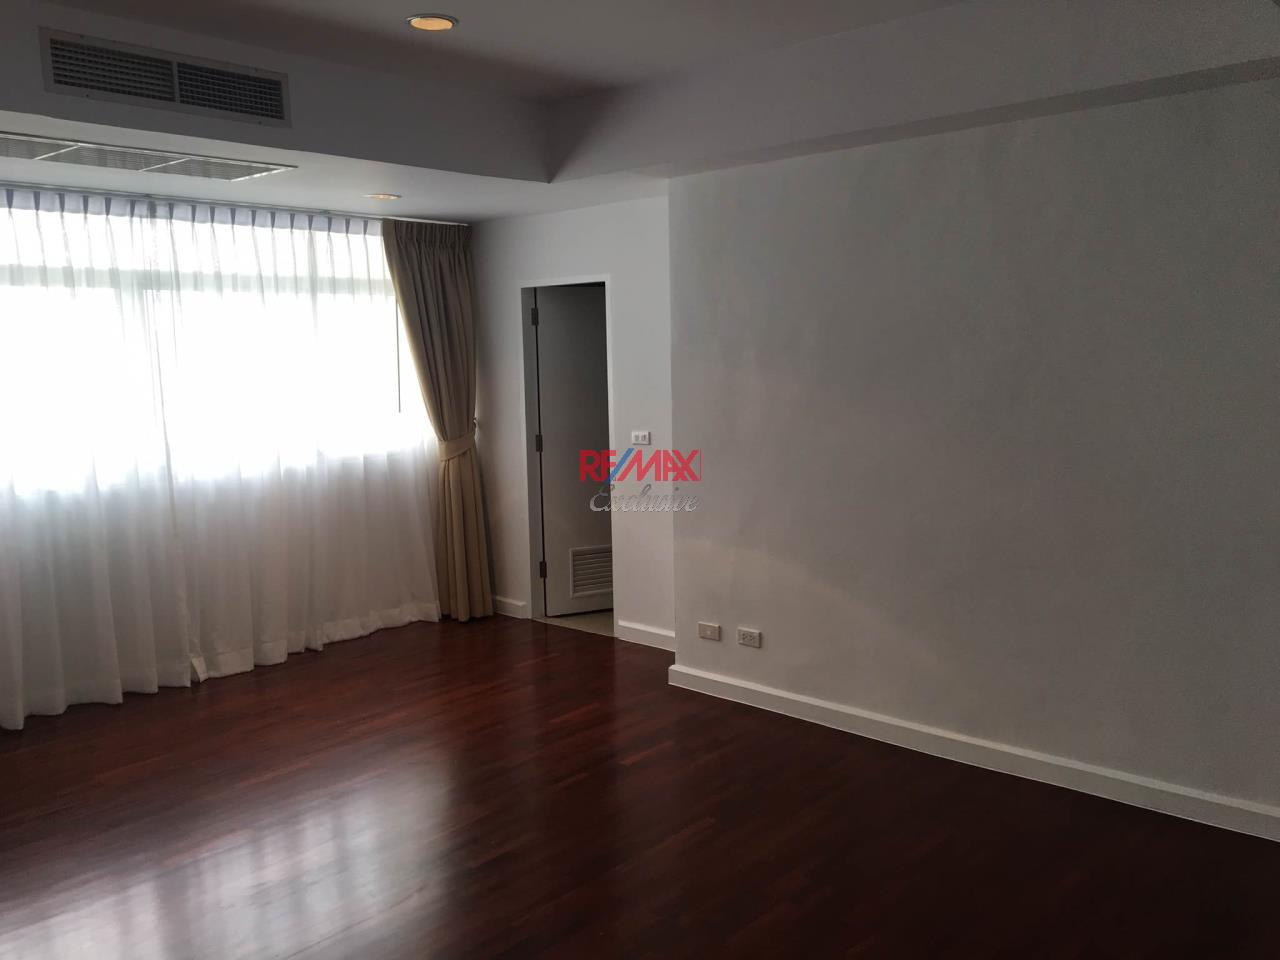 RE/MAX Exclusive Agency's Duplex Penthouse 3 Bedroom for Sale 36M 14